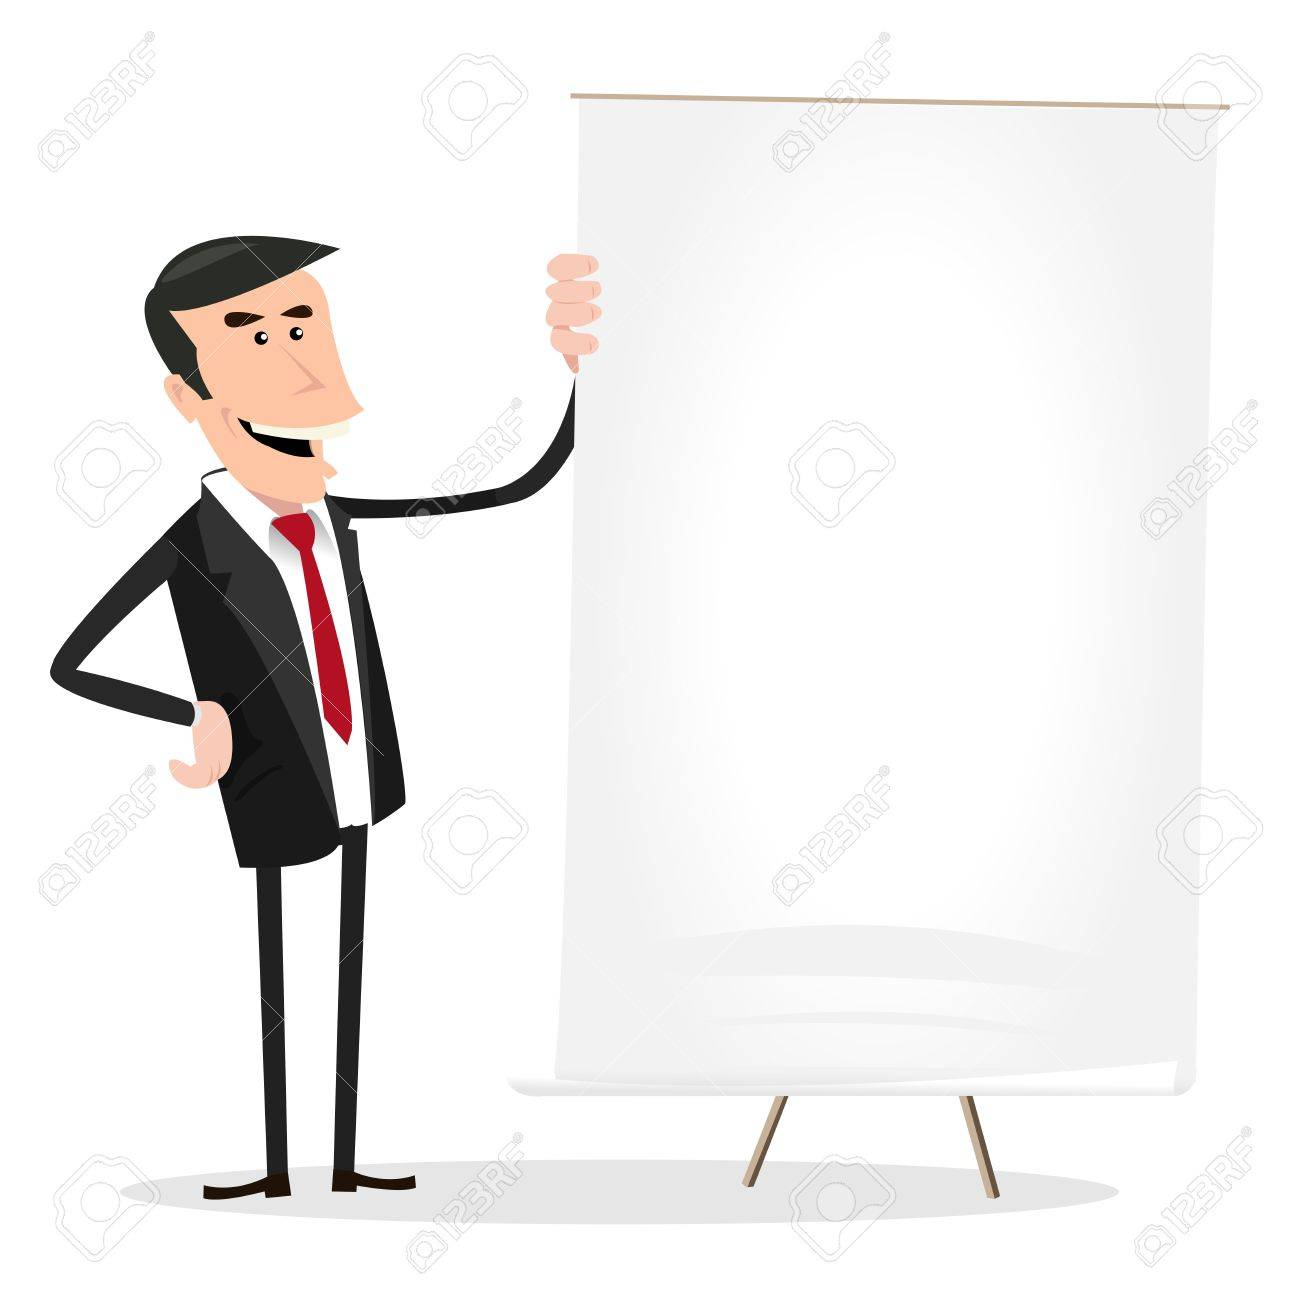 Illustration of a happy cartoon businessman showing excellent income results on a white board Stock Vector - 11248749